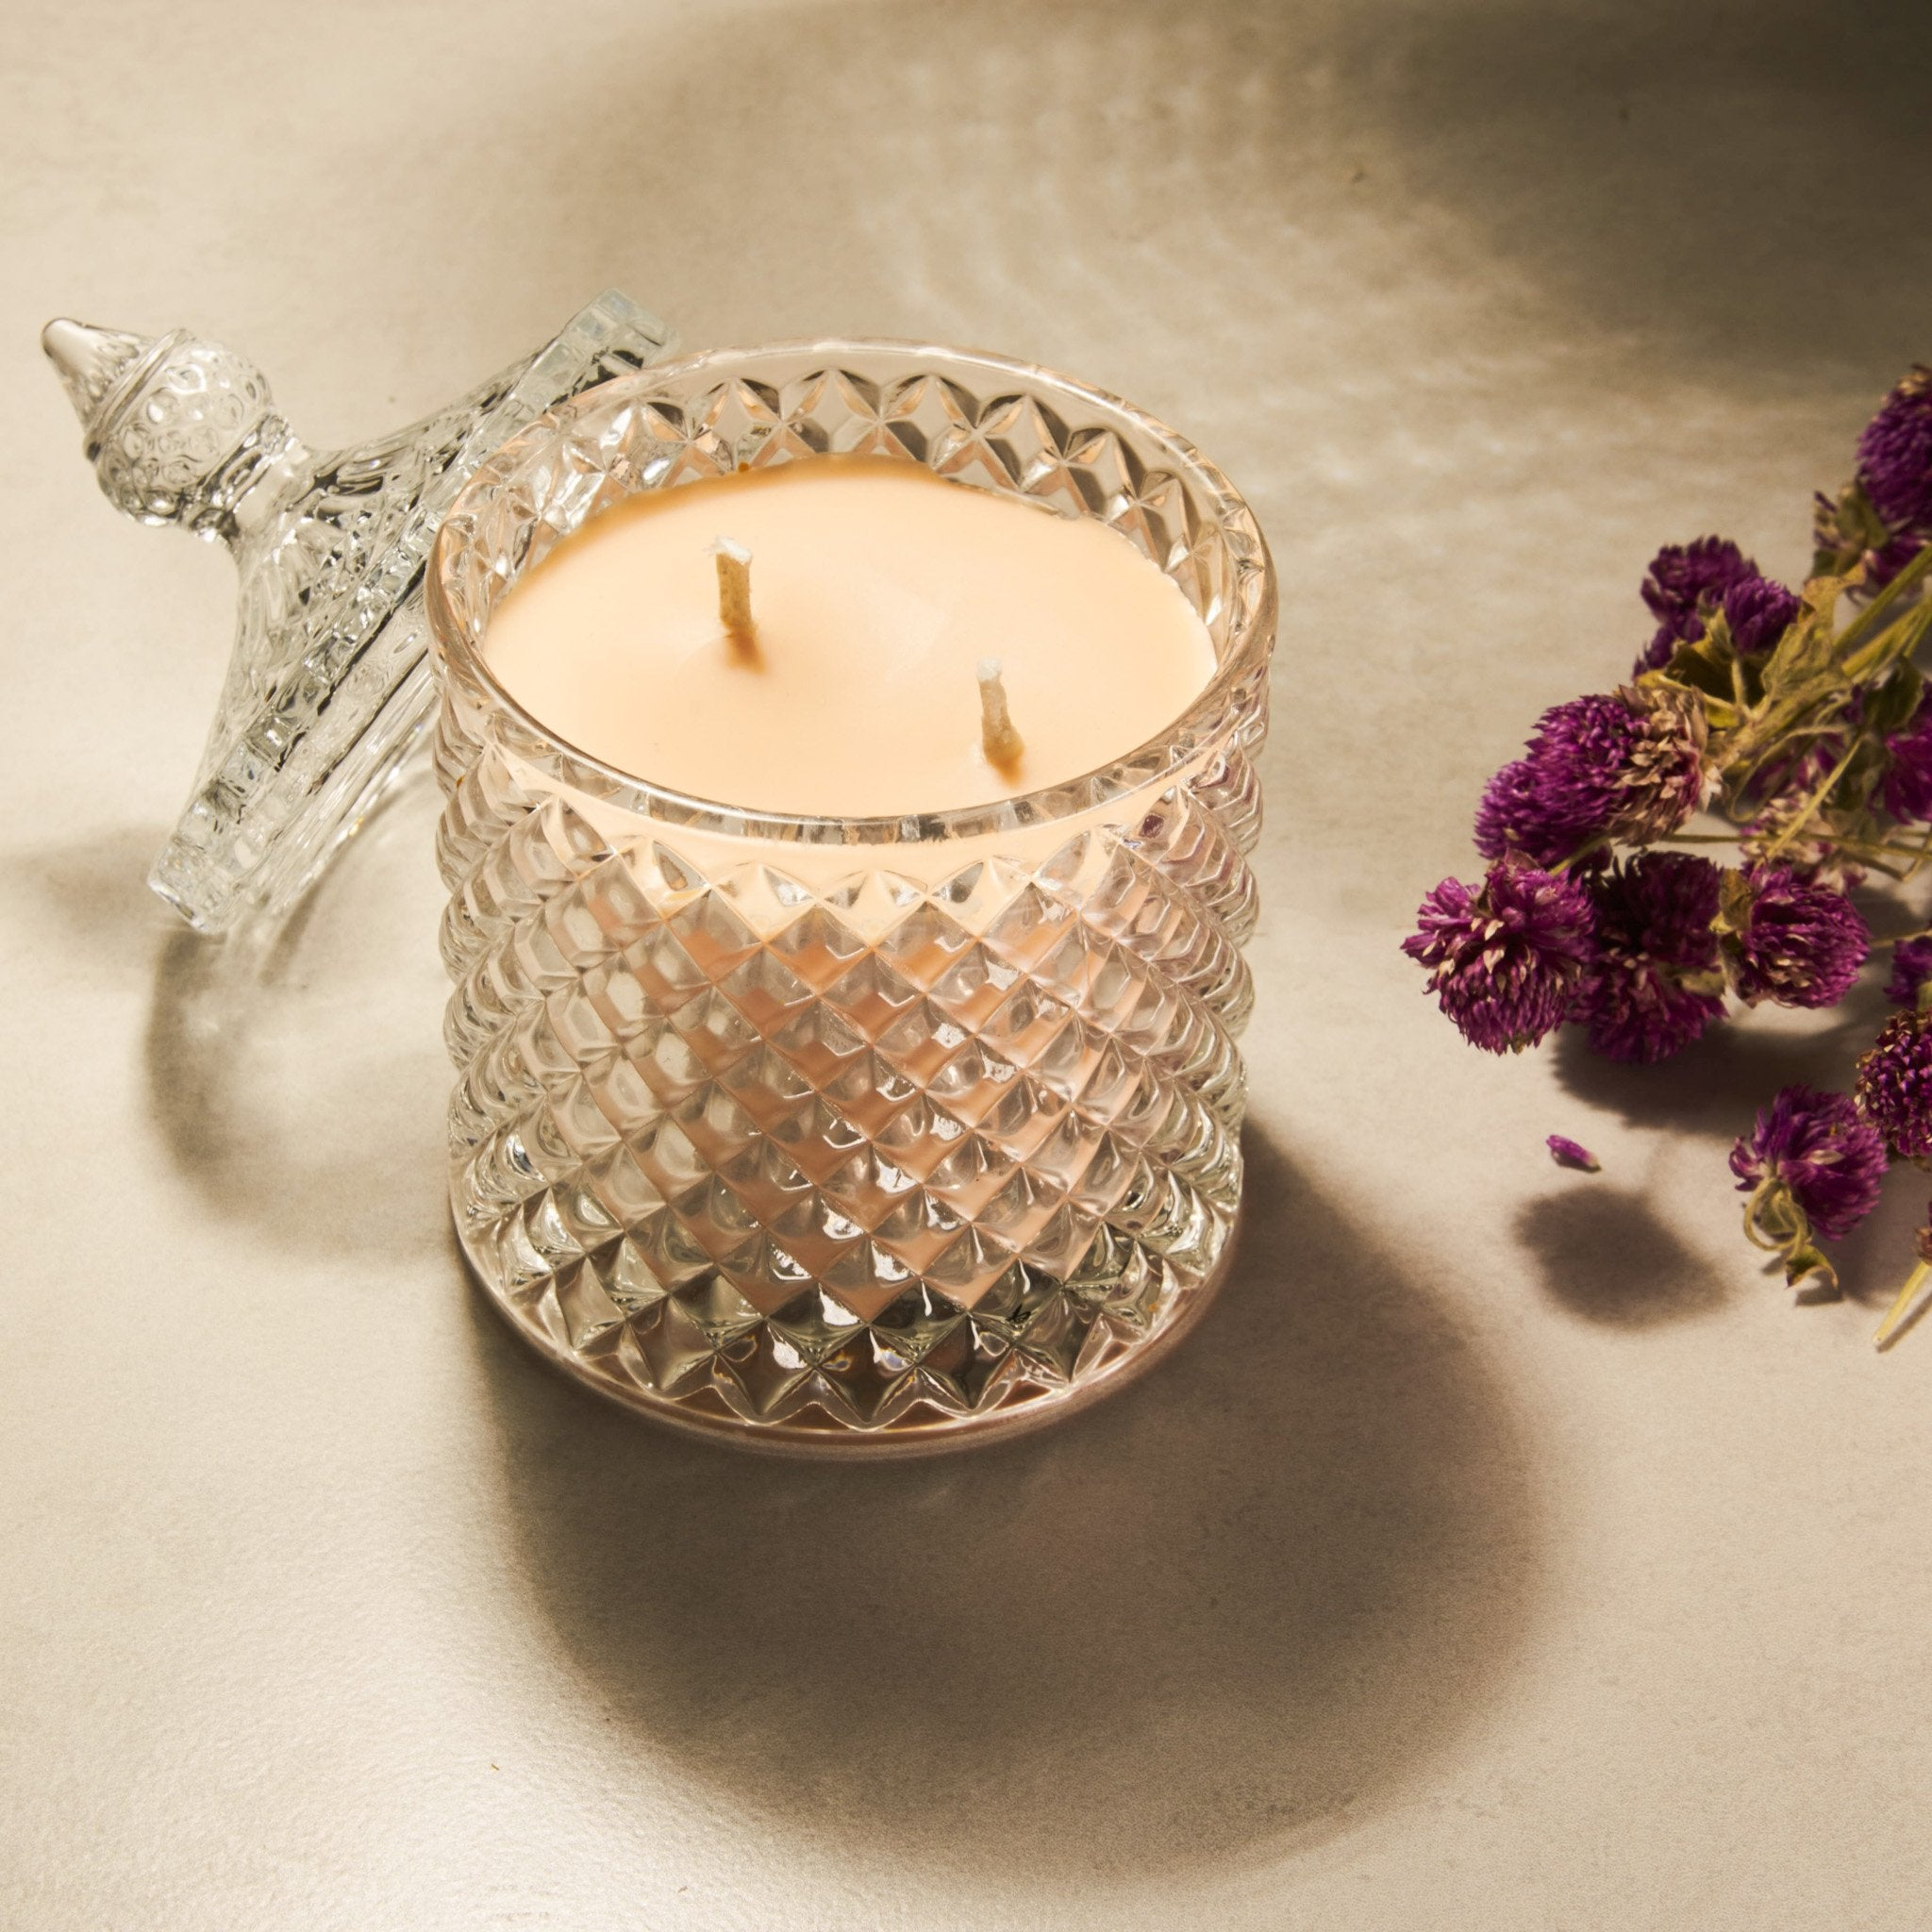 Eternal Gift Set of 2 Decorative Jars and 5 Pillar Candles - Rad Living